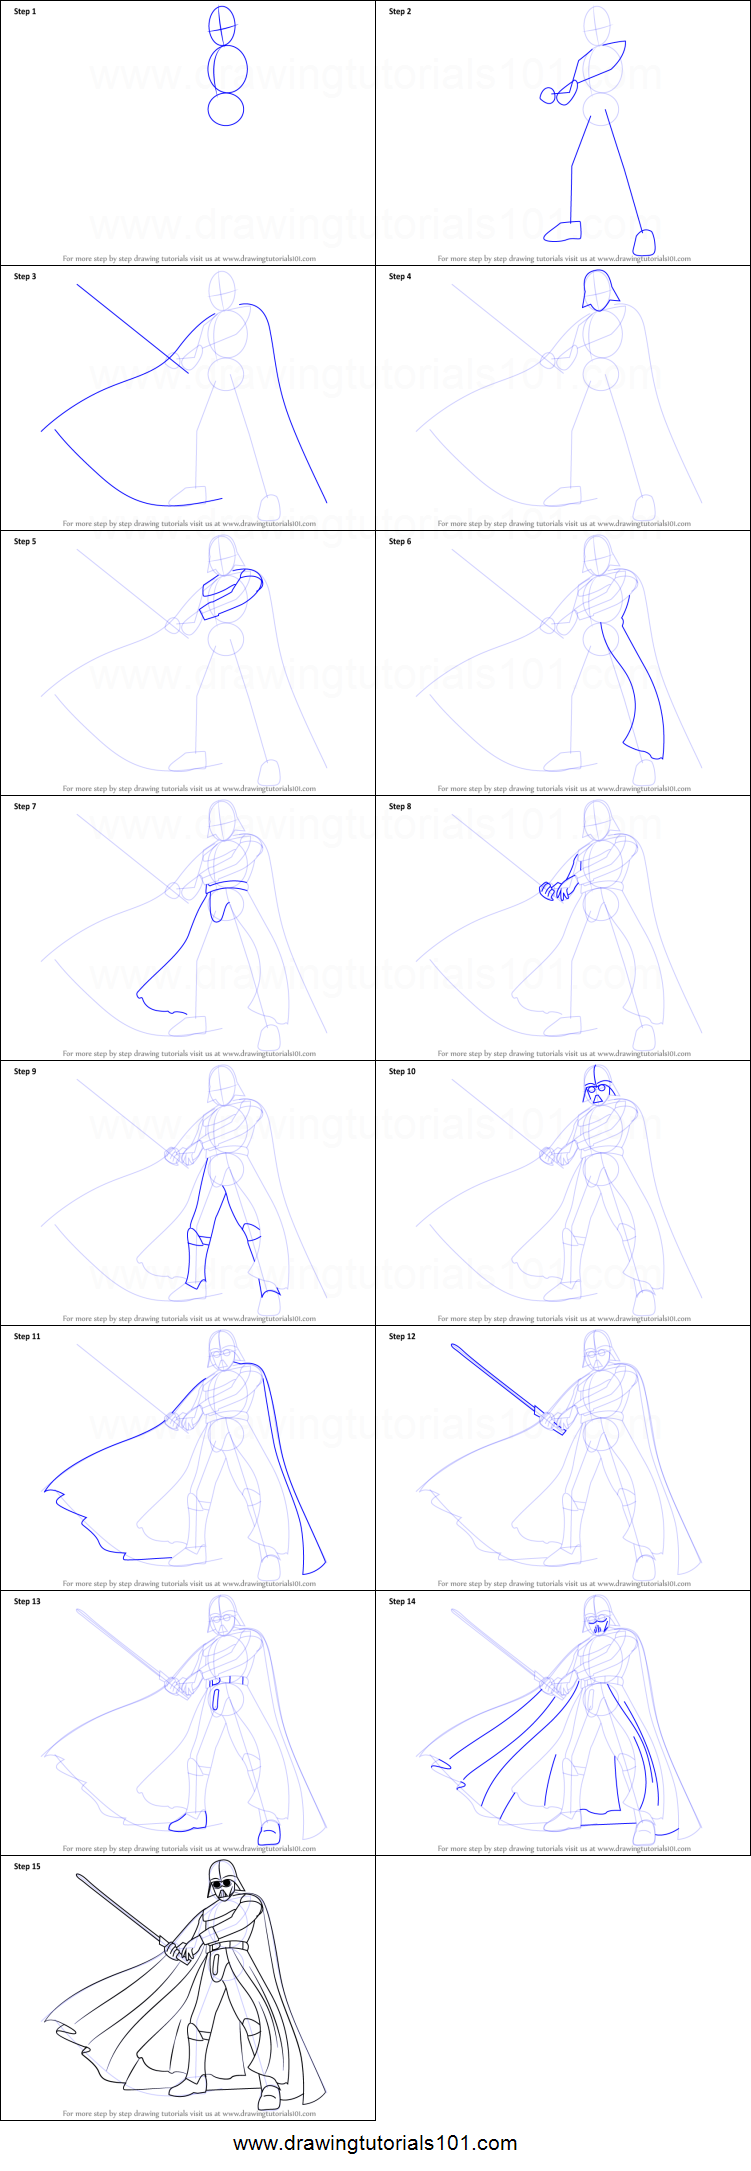 How To Draw Darth Vader From Star Wars Printable Step By Step